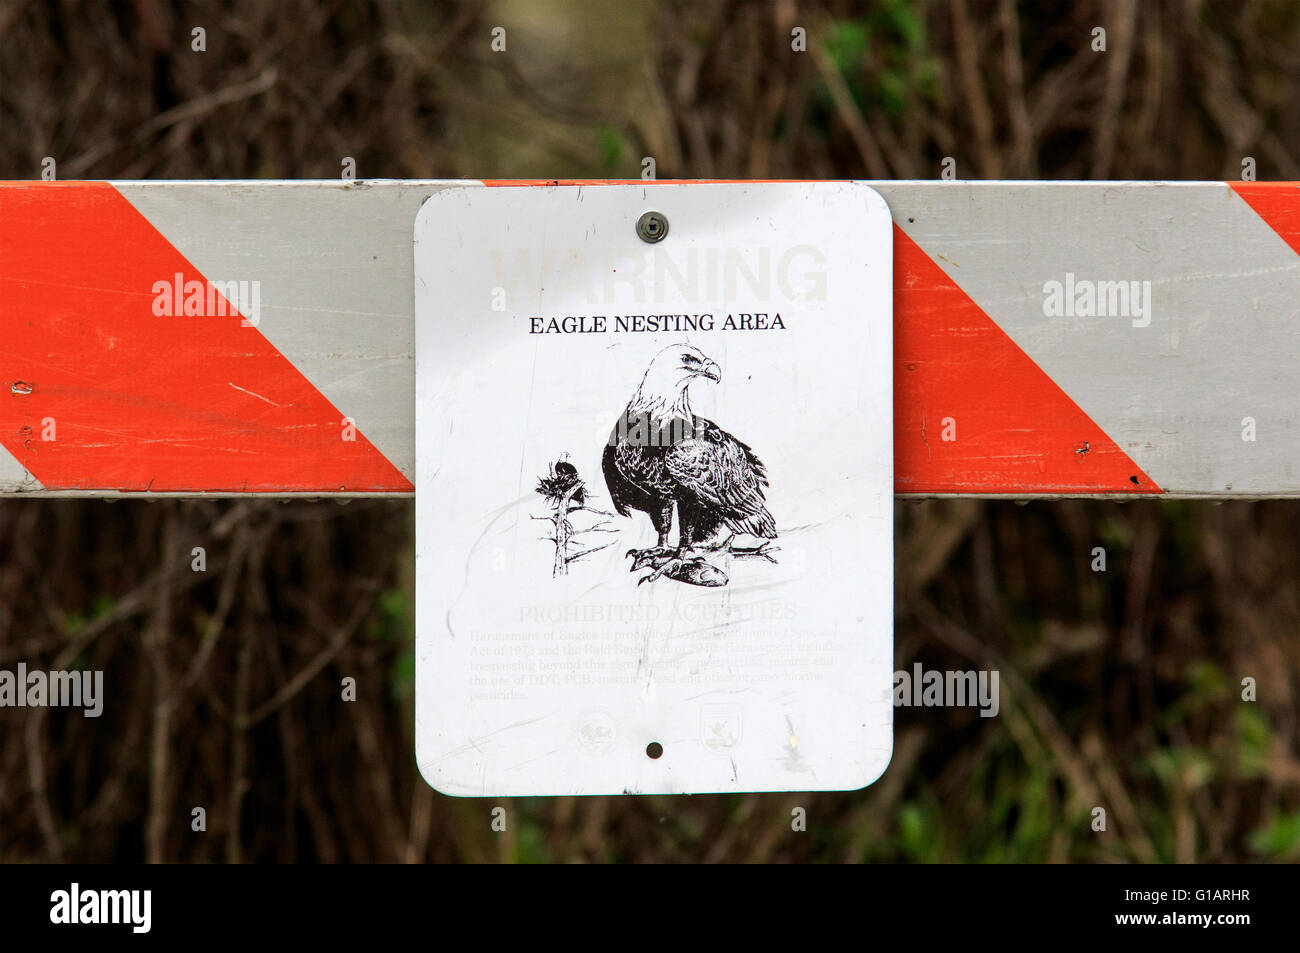 Sign on barricade restricting access due to the presence of a bald eagle nest. - Stock Image